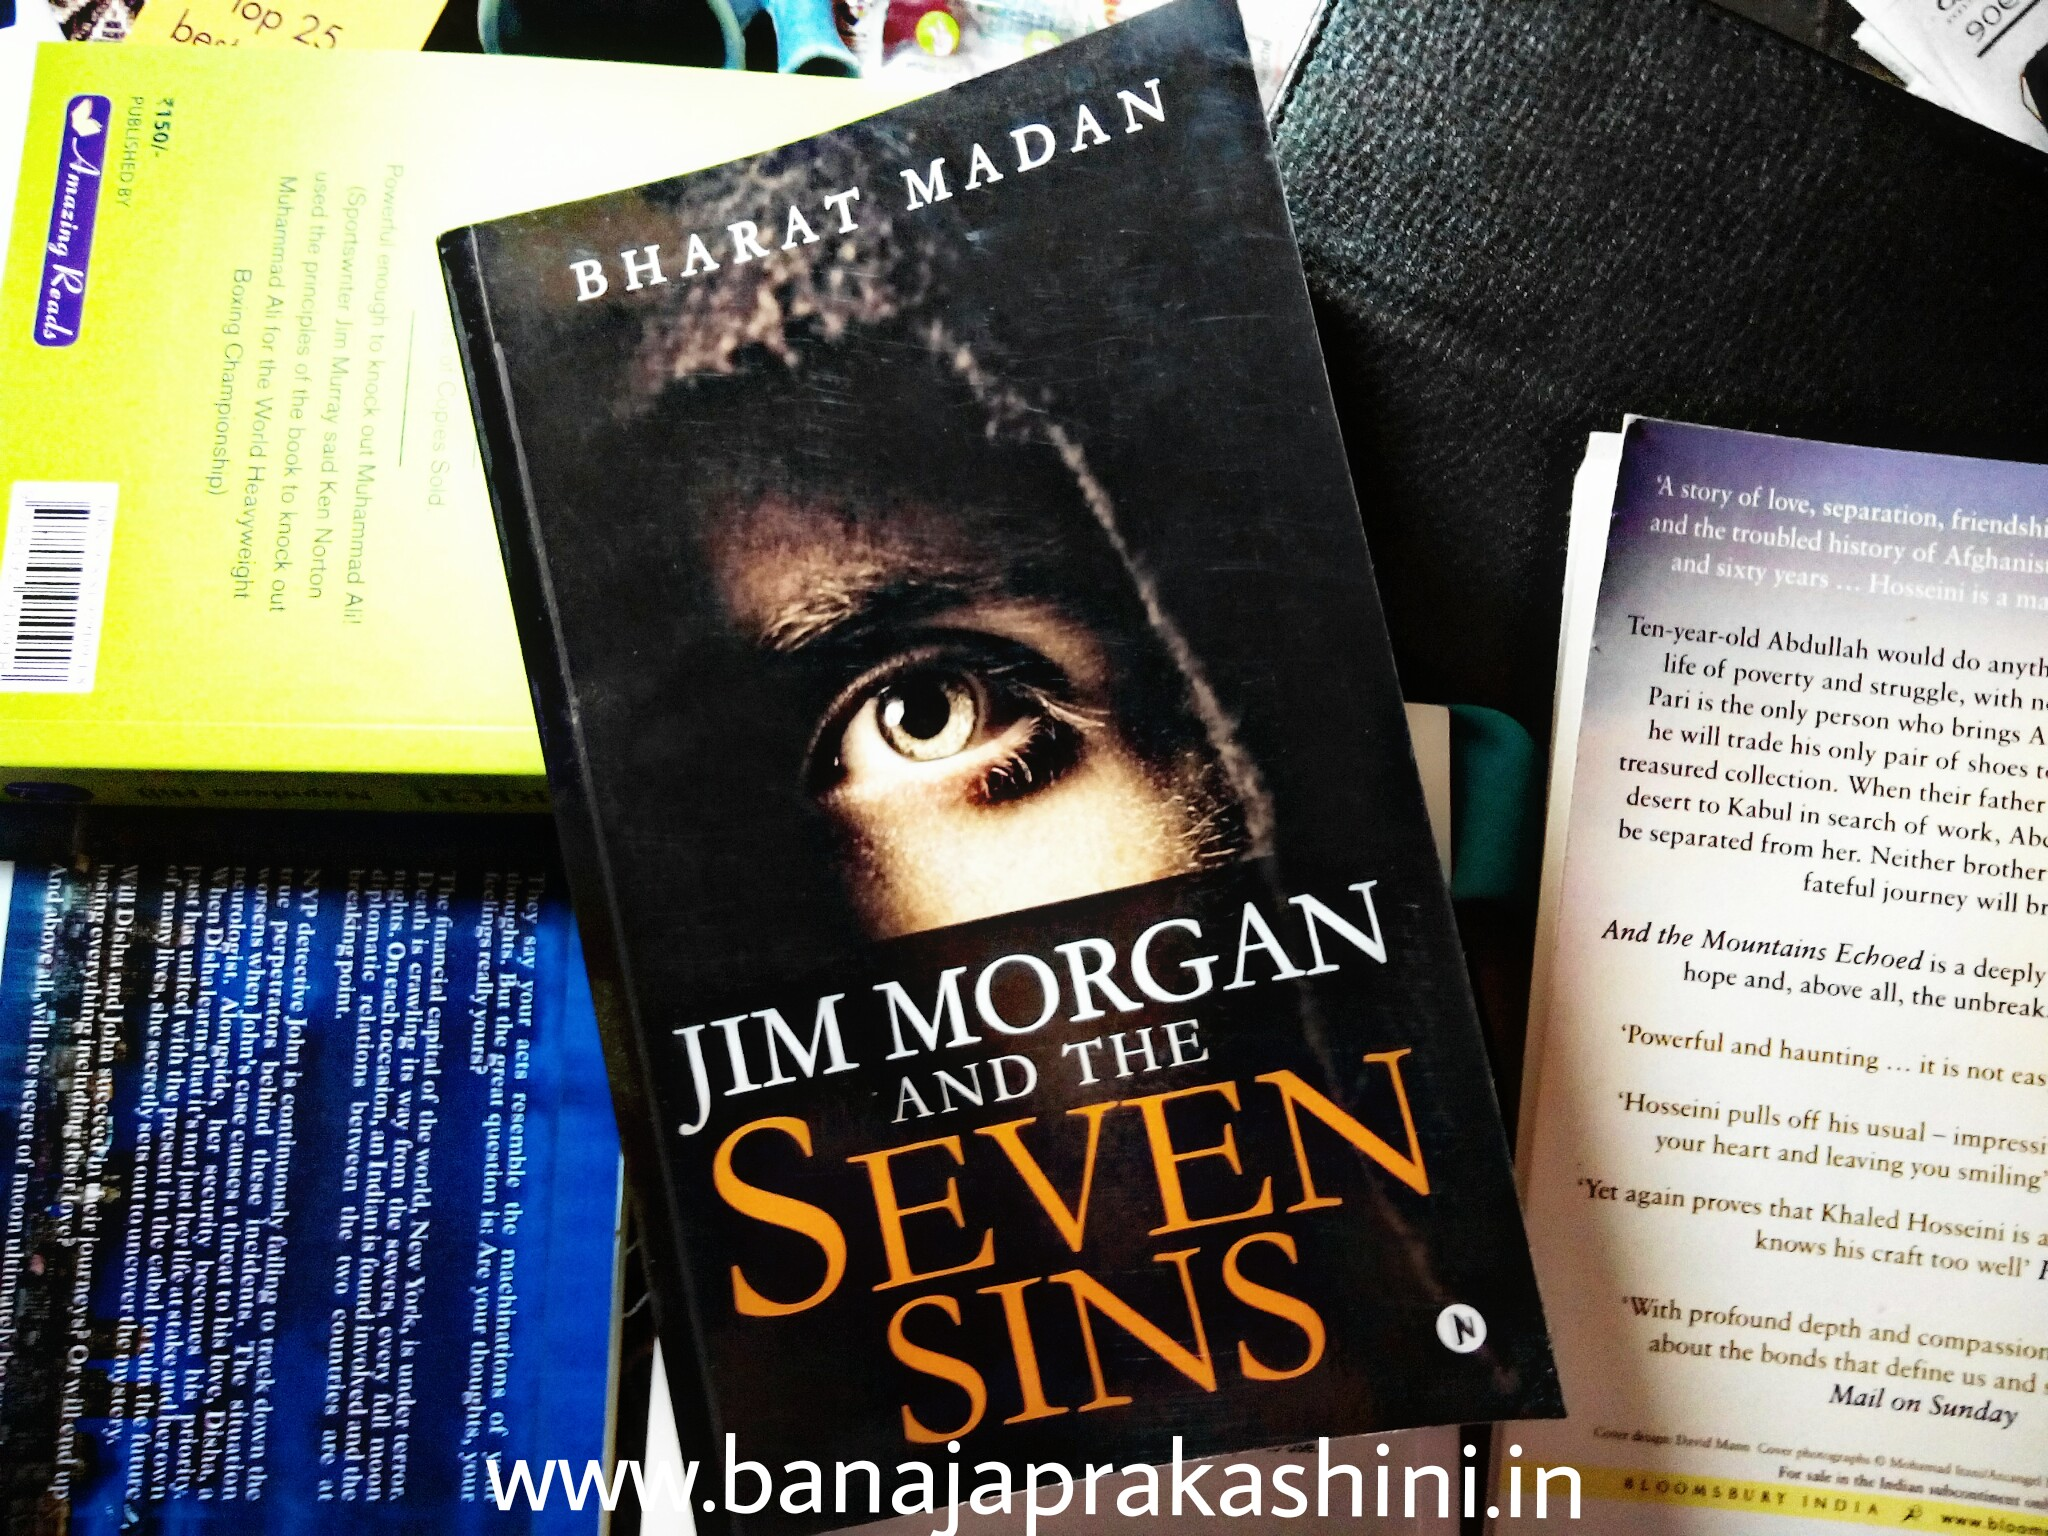 Review Pen: Jim Morgan And The Seven Sins by Bharat Madan (Paperback)